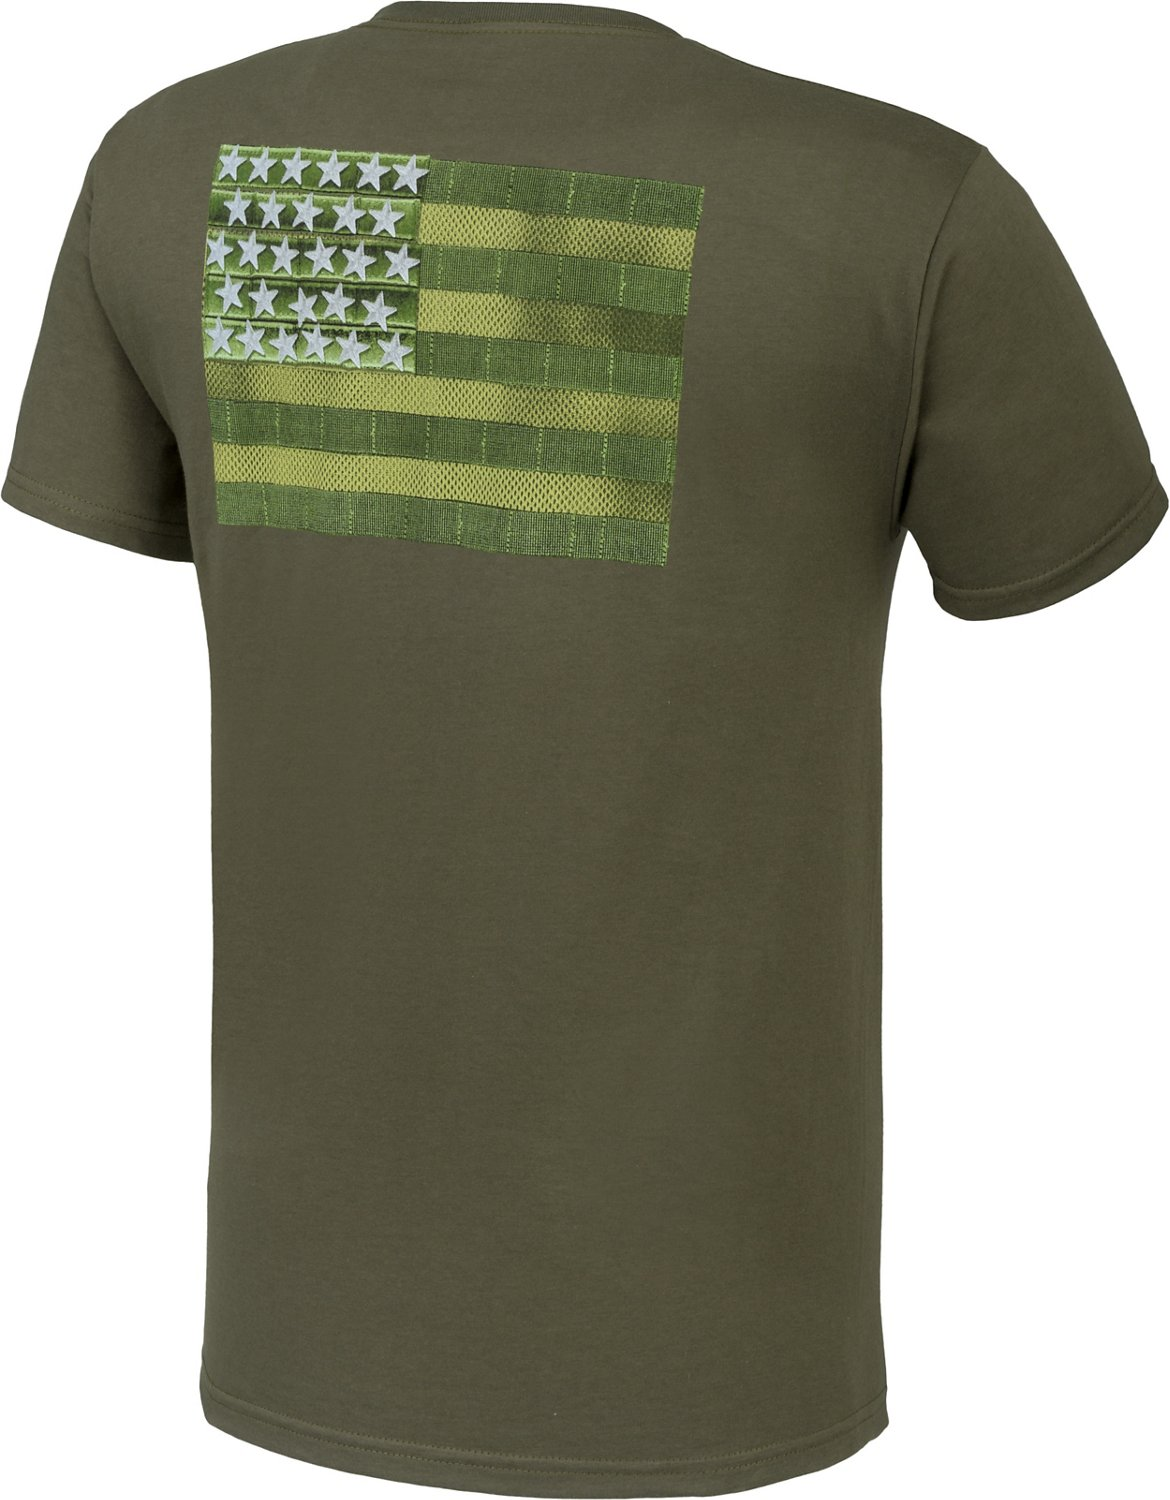 adb1ae7e4219 Display product reviews for 5.11 Tactical Men's MOLLE America Short Sleeve T -shirt